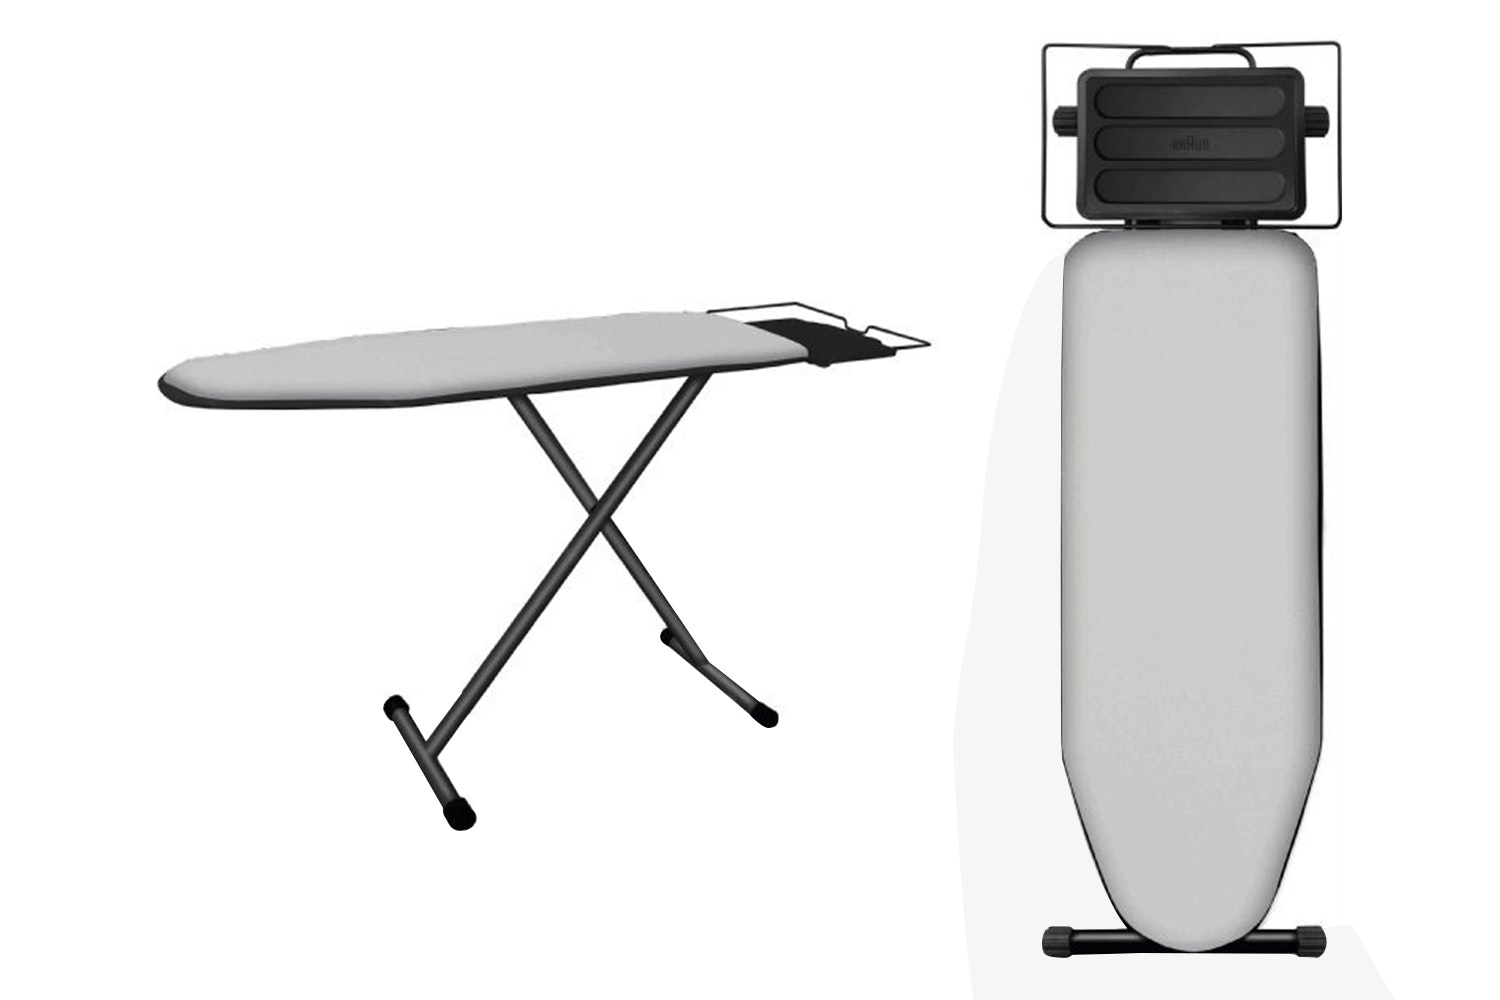 Braun CareStyle Ironing Board | IB3001BK